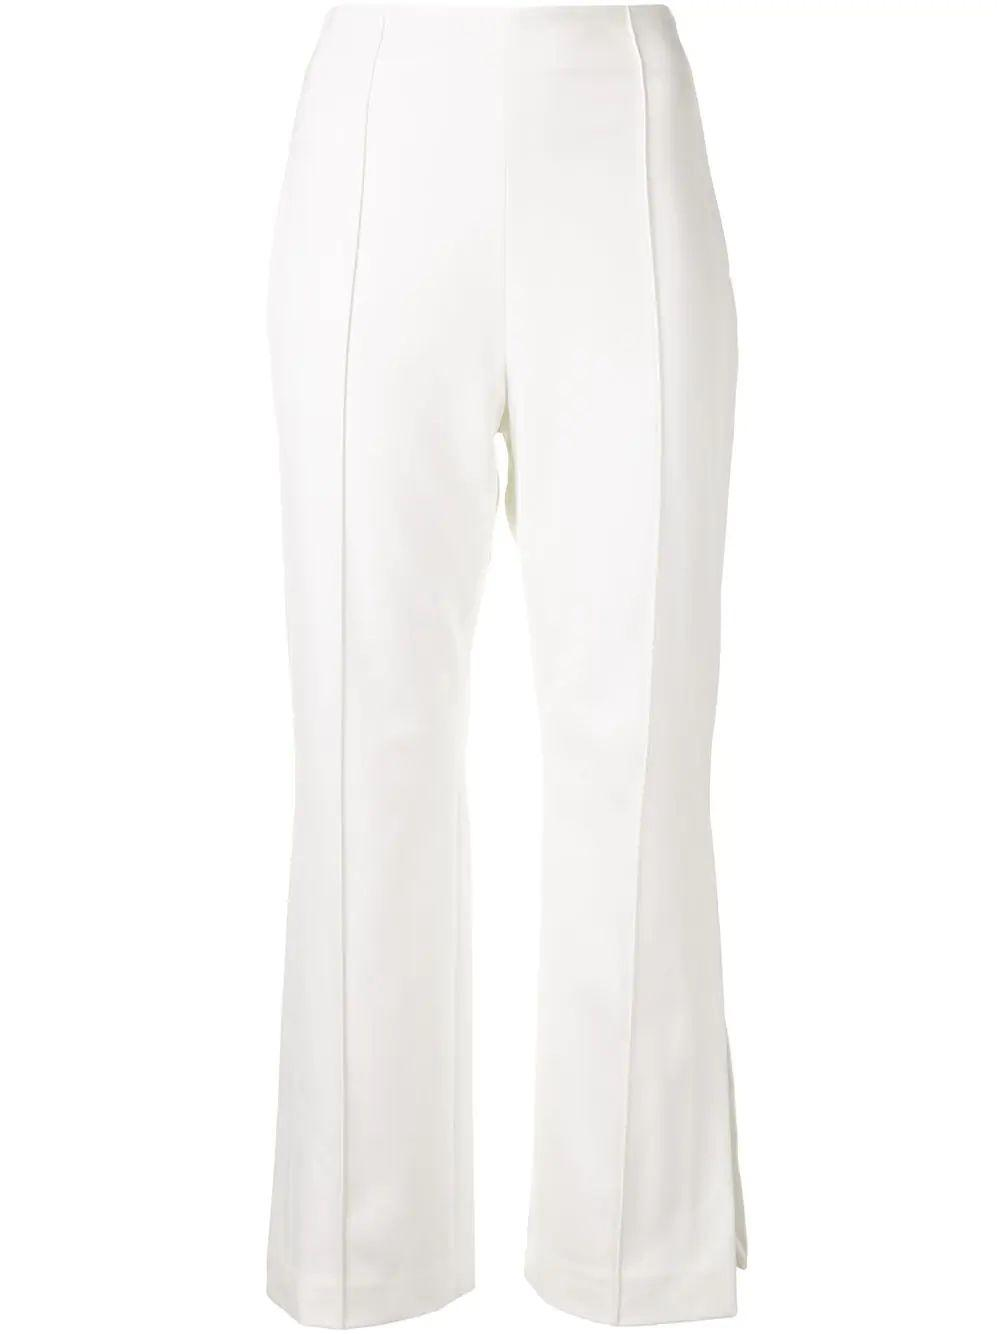 Jas Cropped Flare Pant With Side Slit Lace Item # 420-4030-U